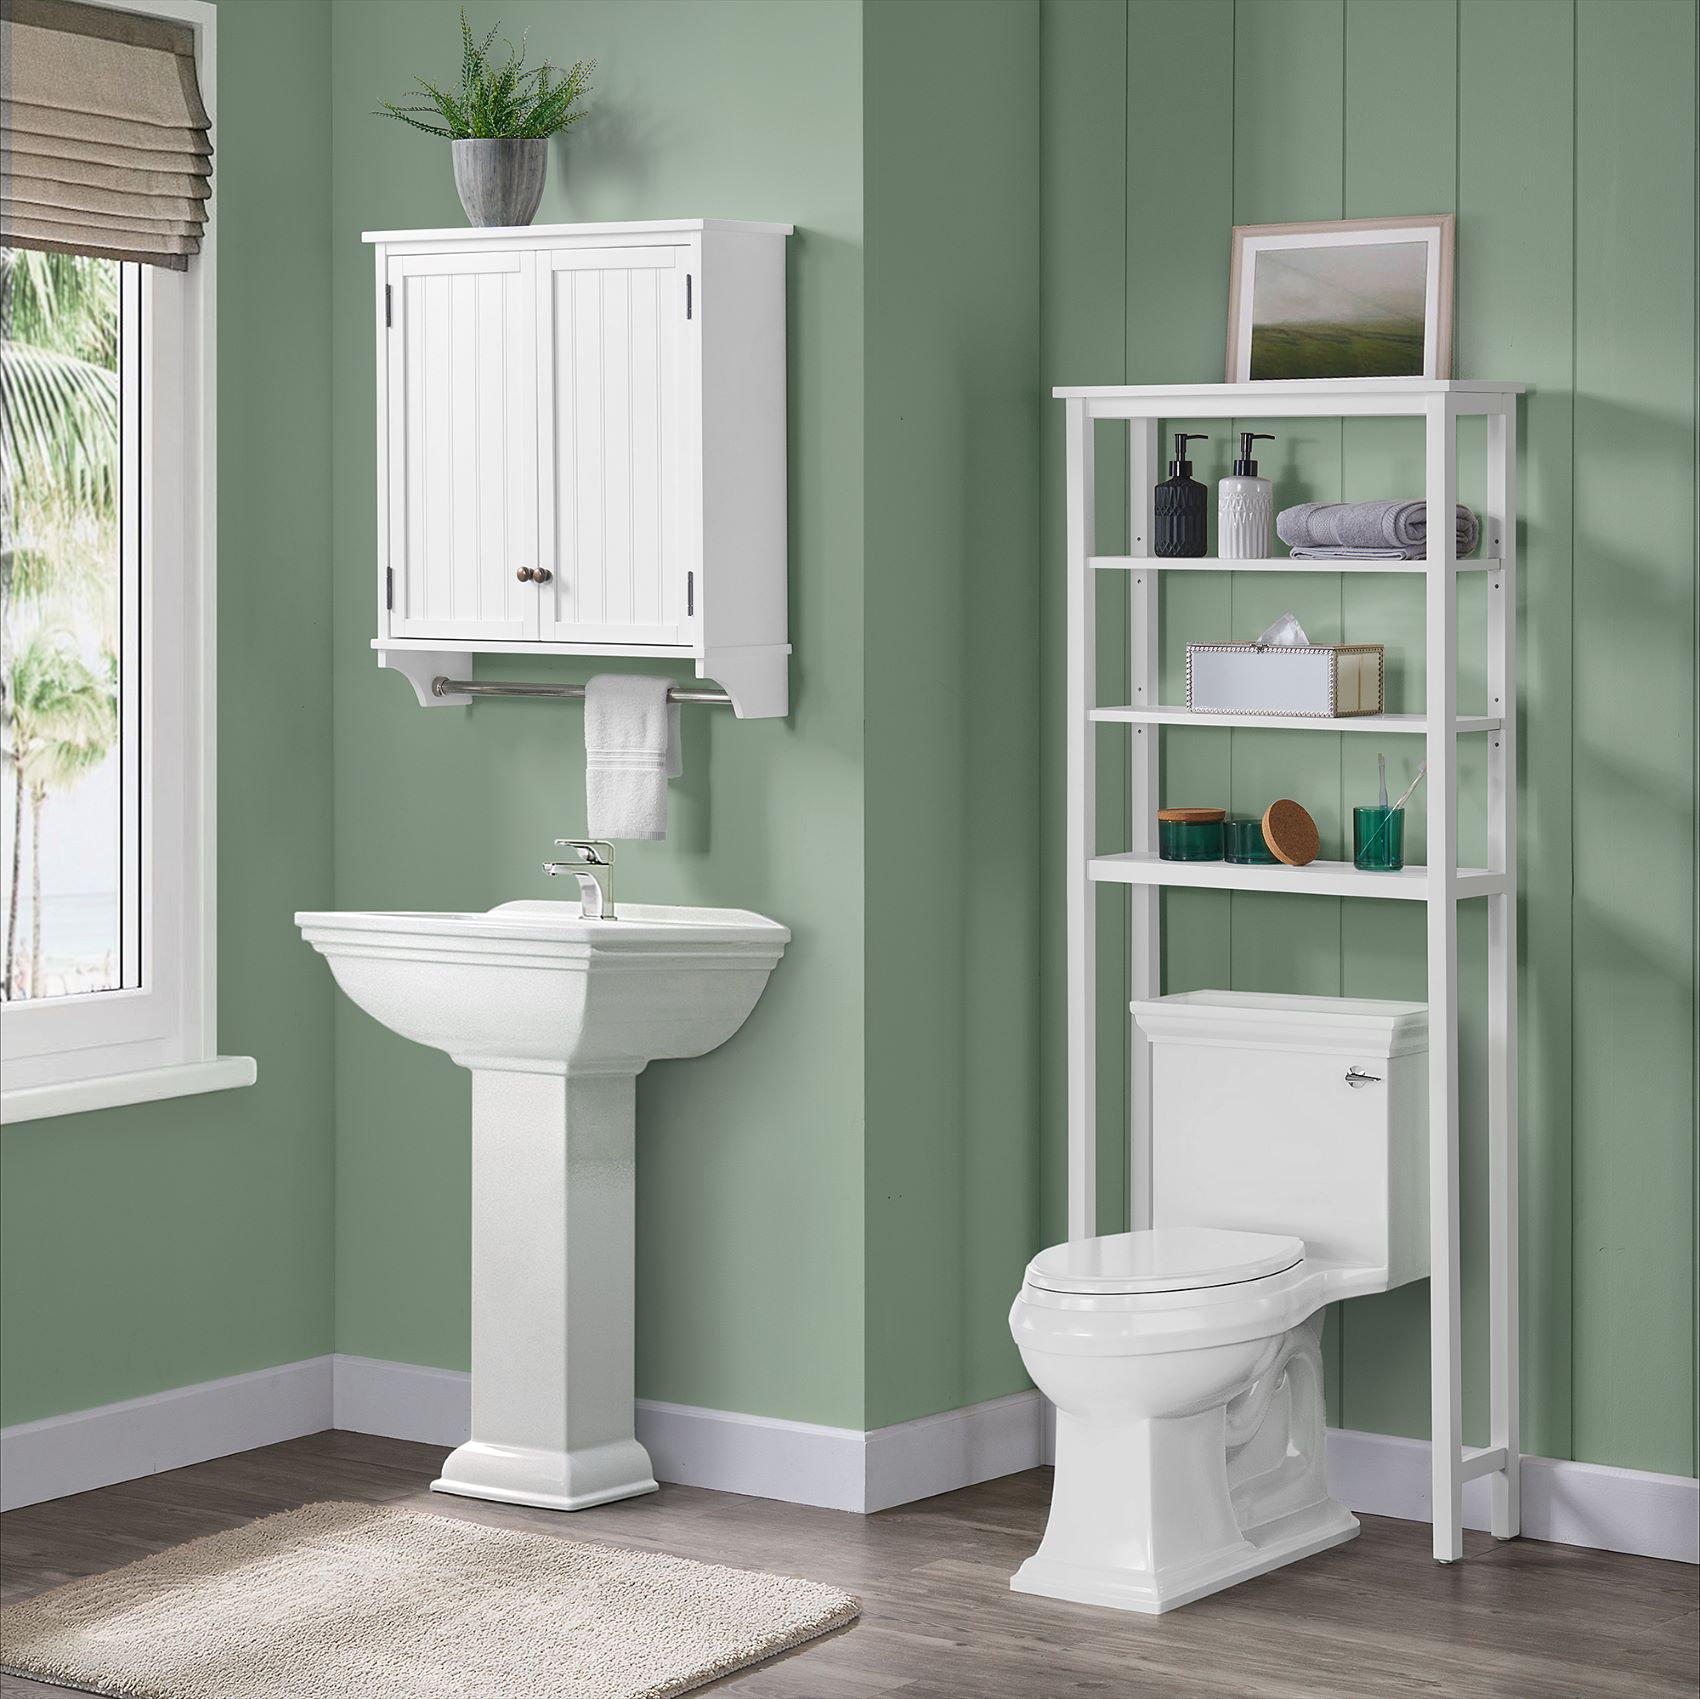 Dover Over Toilet Organizer With Open, White Over The Toilet Cabinet With Towel Bar